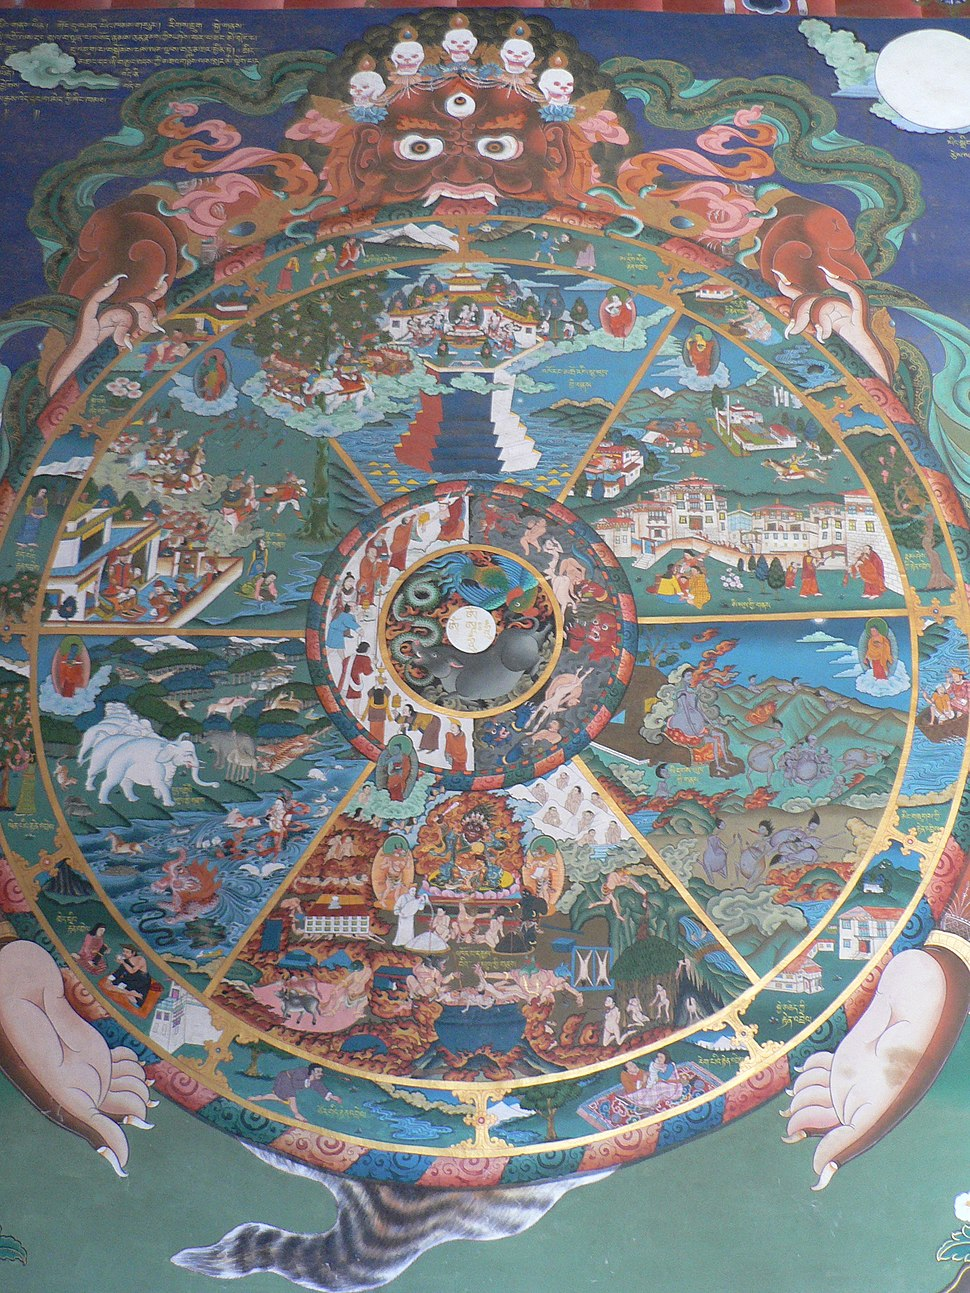 The wheel of life, Trongsa dzong